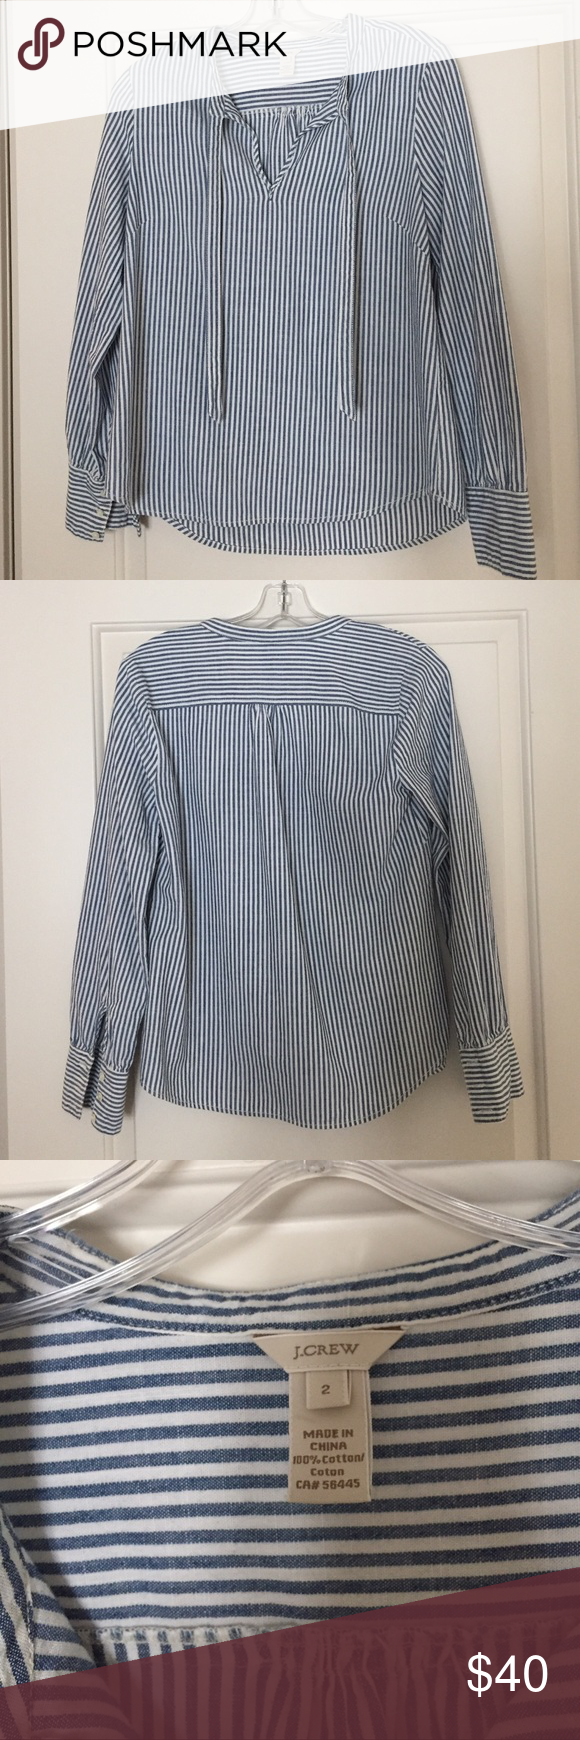 0b93dc4e276 J. Crew Striped Tie Neck Top 100% Cotton tie-neck top in blue and white  shirting stripe. No rips or stains - in great condition! J. Crew Tops  Blouses